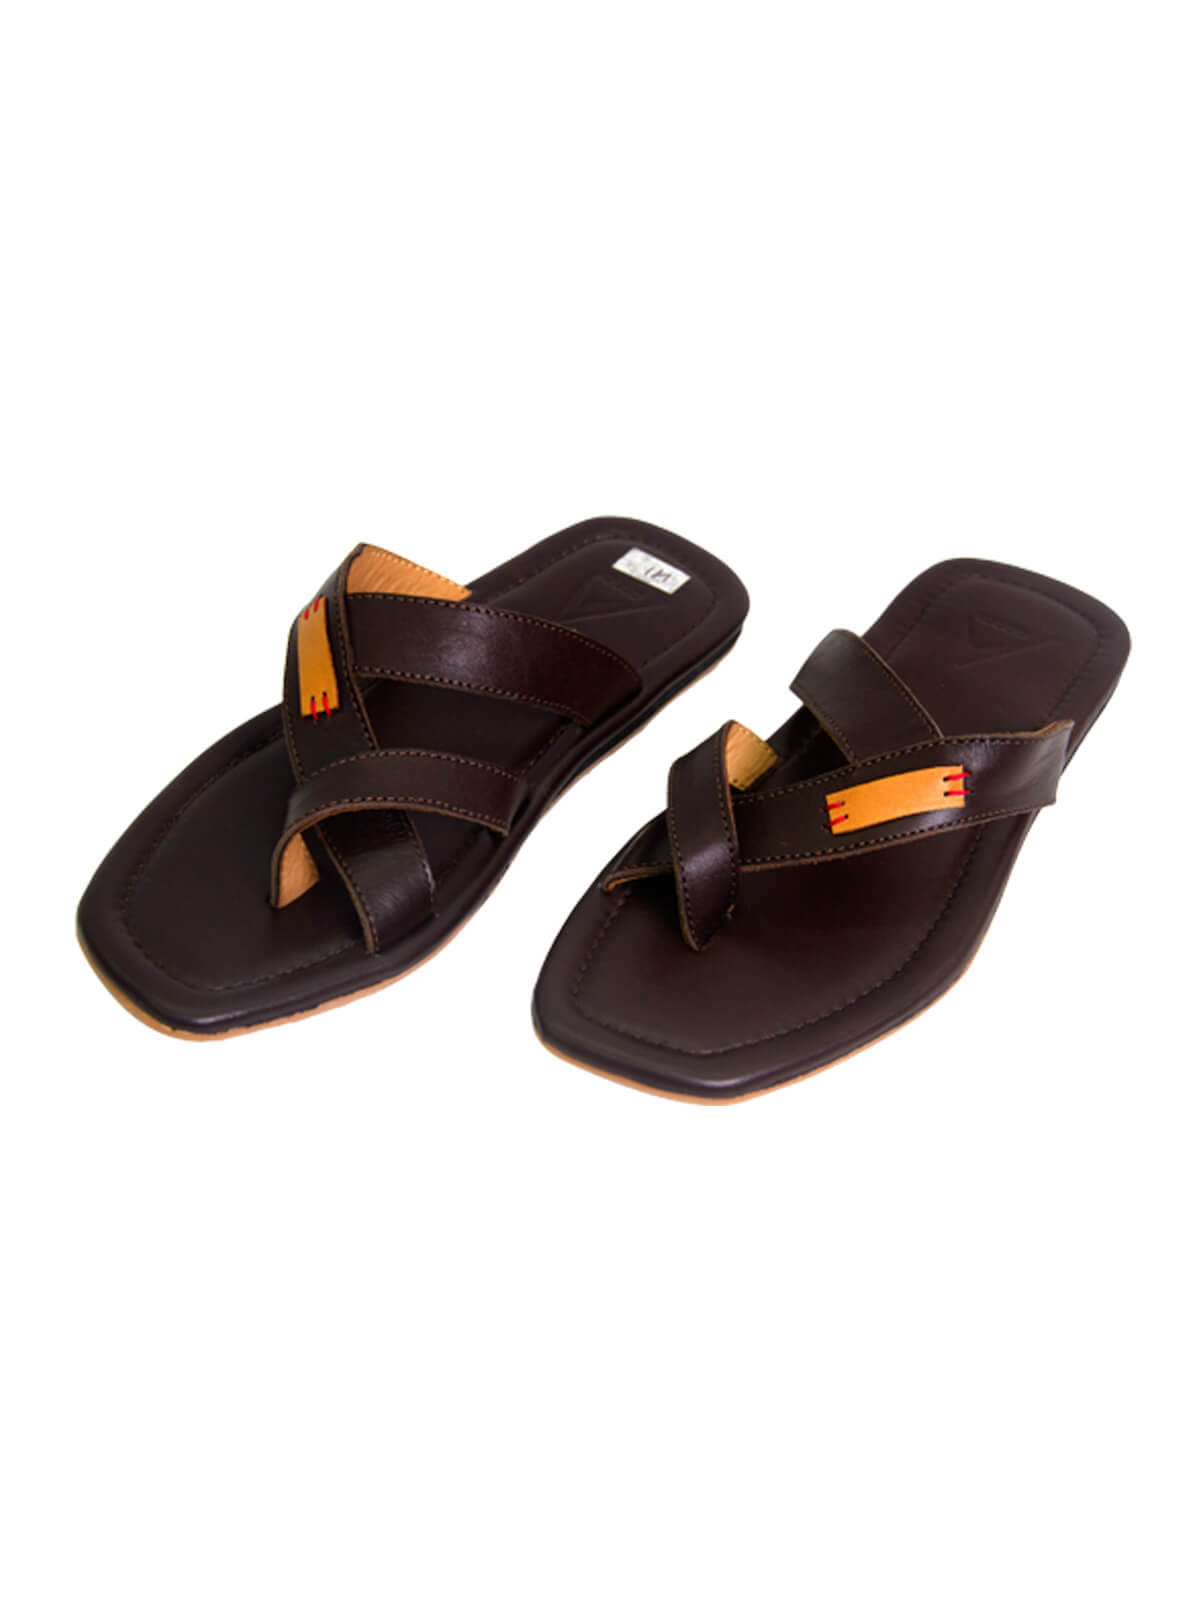 Temptress Brown Gent's Leather Sandal